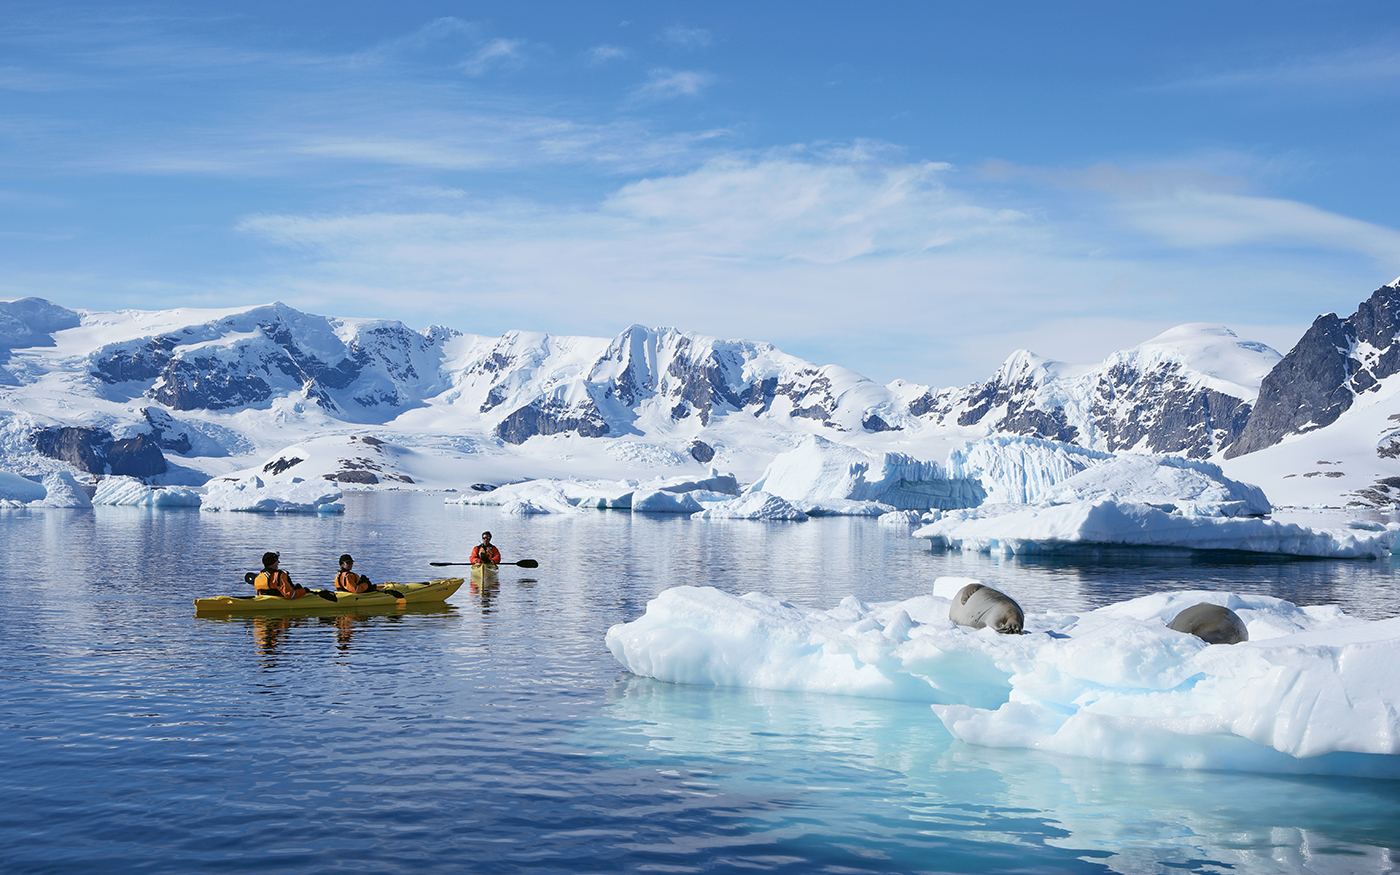 Kayakers from the Seabourn Quest get close to sea lions on an ice floe.